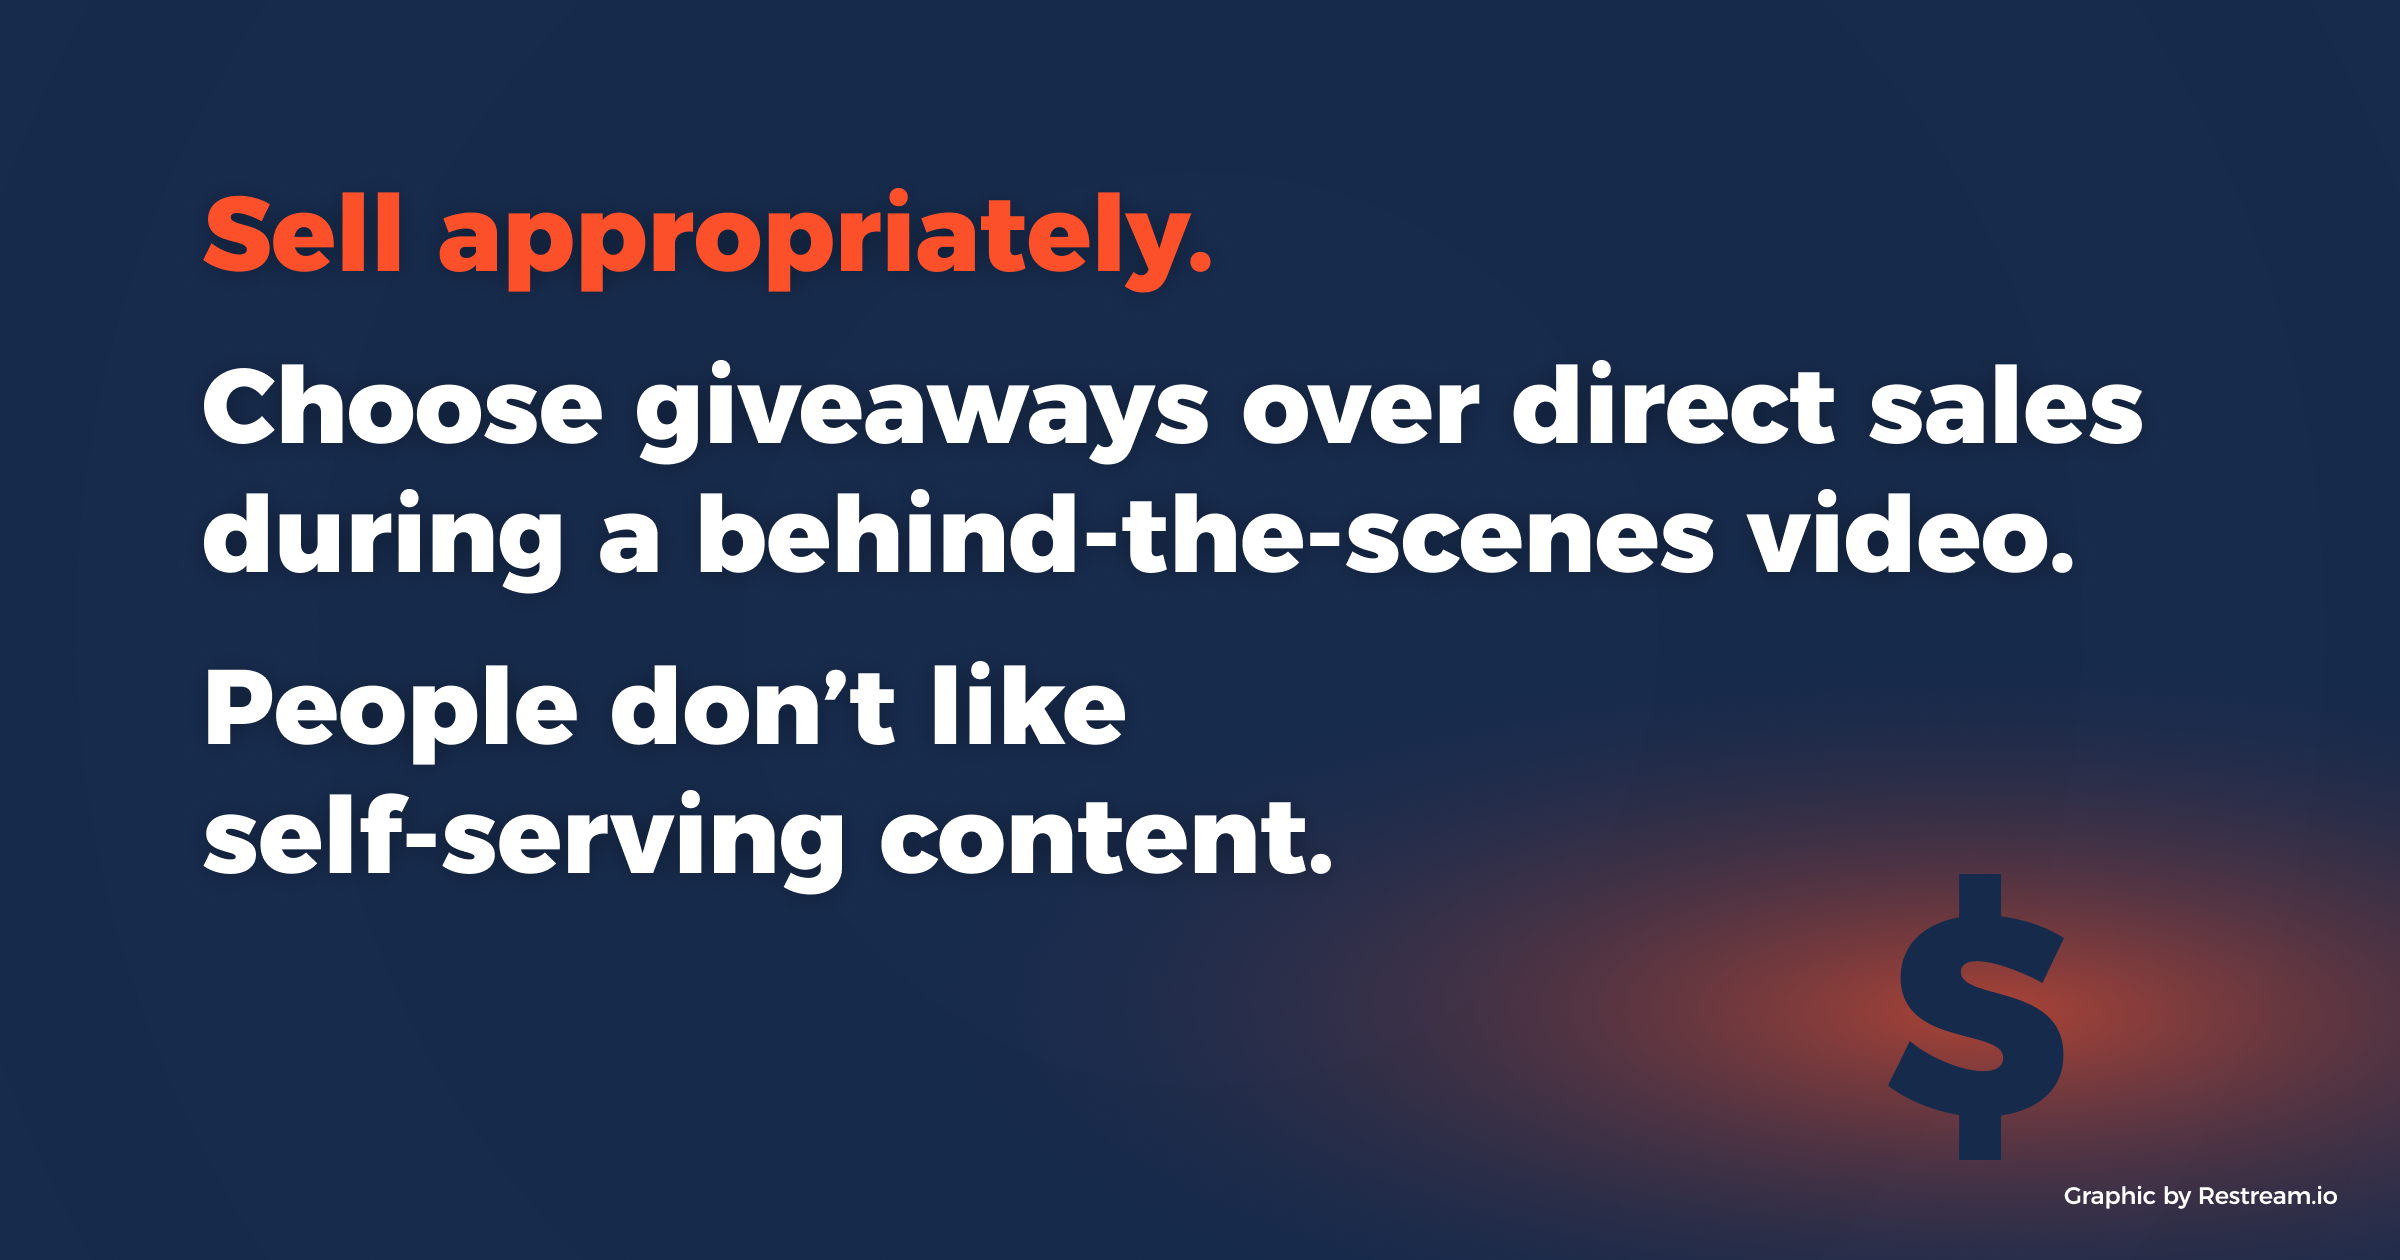 Sell appropriately - choose giveaways over direct sales during a behind-the-scenes video